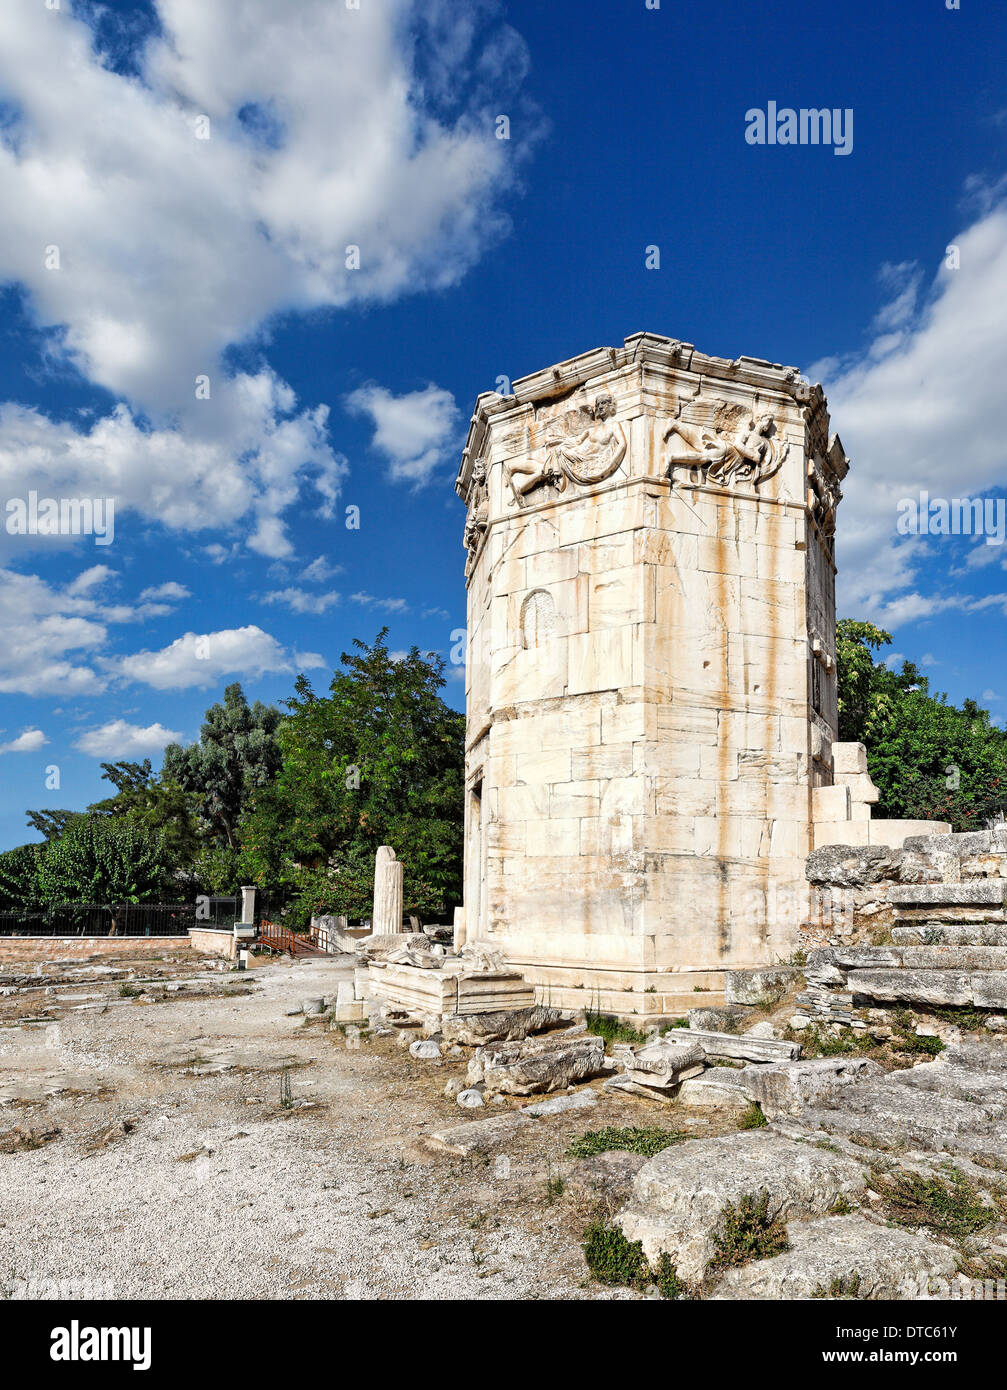 The Tower of the Winds (Aerides) also known as the Horologion of Kyrrhestos (1st c. B.C.) in the Roman Agora, Greece - Stock Image